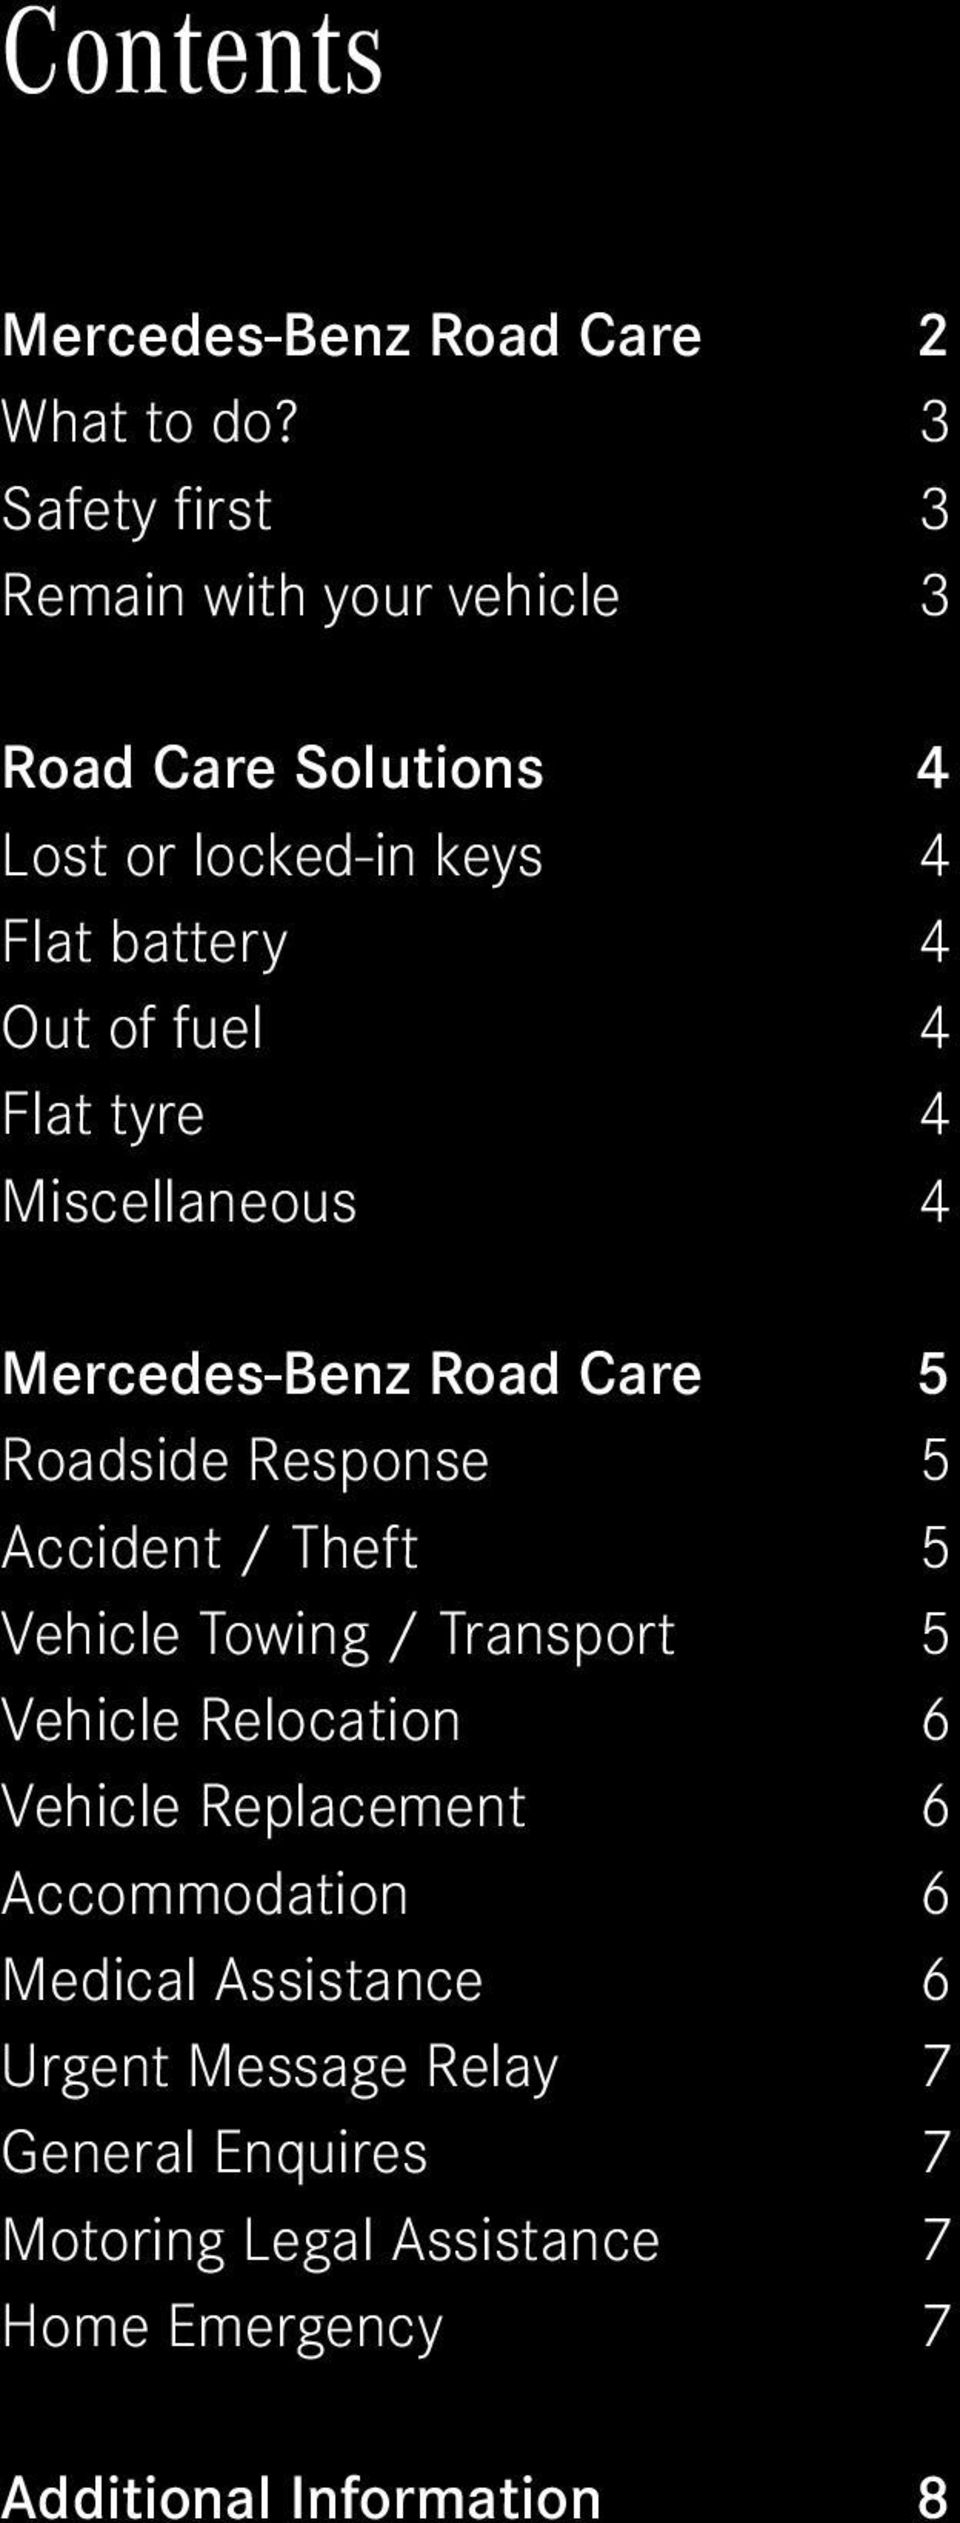 Flat tyre 4 Miscellaneous 4 Mercedes-Benz Road Care 5 Roadside Response 5 Accident / Theft 5 Vehicle Towing / Transport